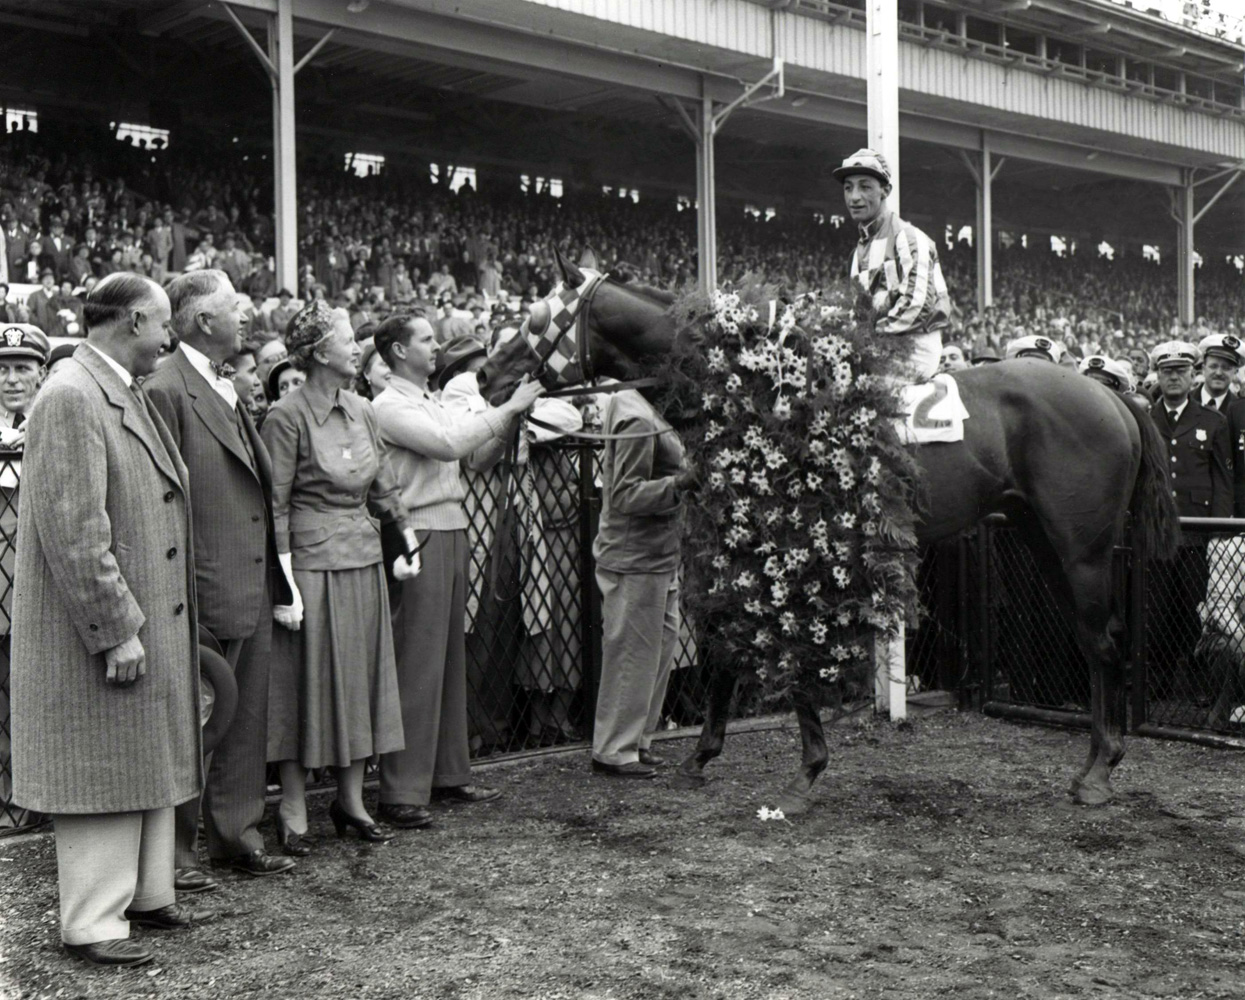 Winner's circle photograph for the 1950 Preakness Stakes at Pimlico, won by Christopher Chenery's Hill Prince(Eddie Arcaro up) (Keeneland Library Morgan Collection/Museum Collection)